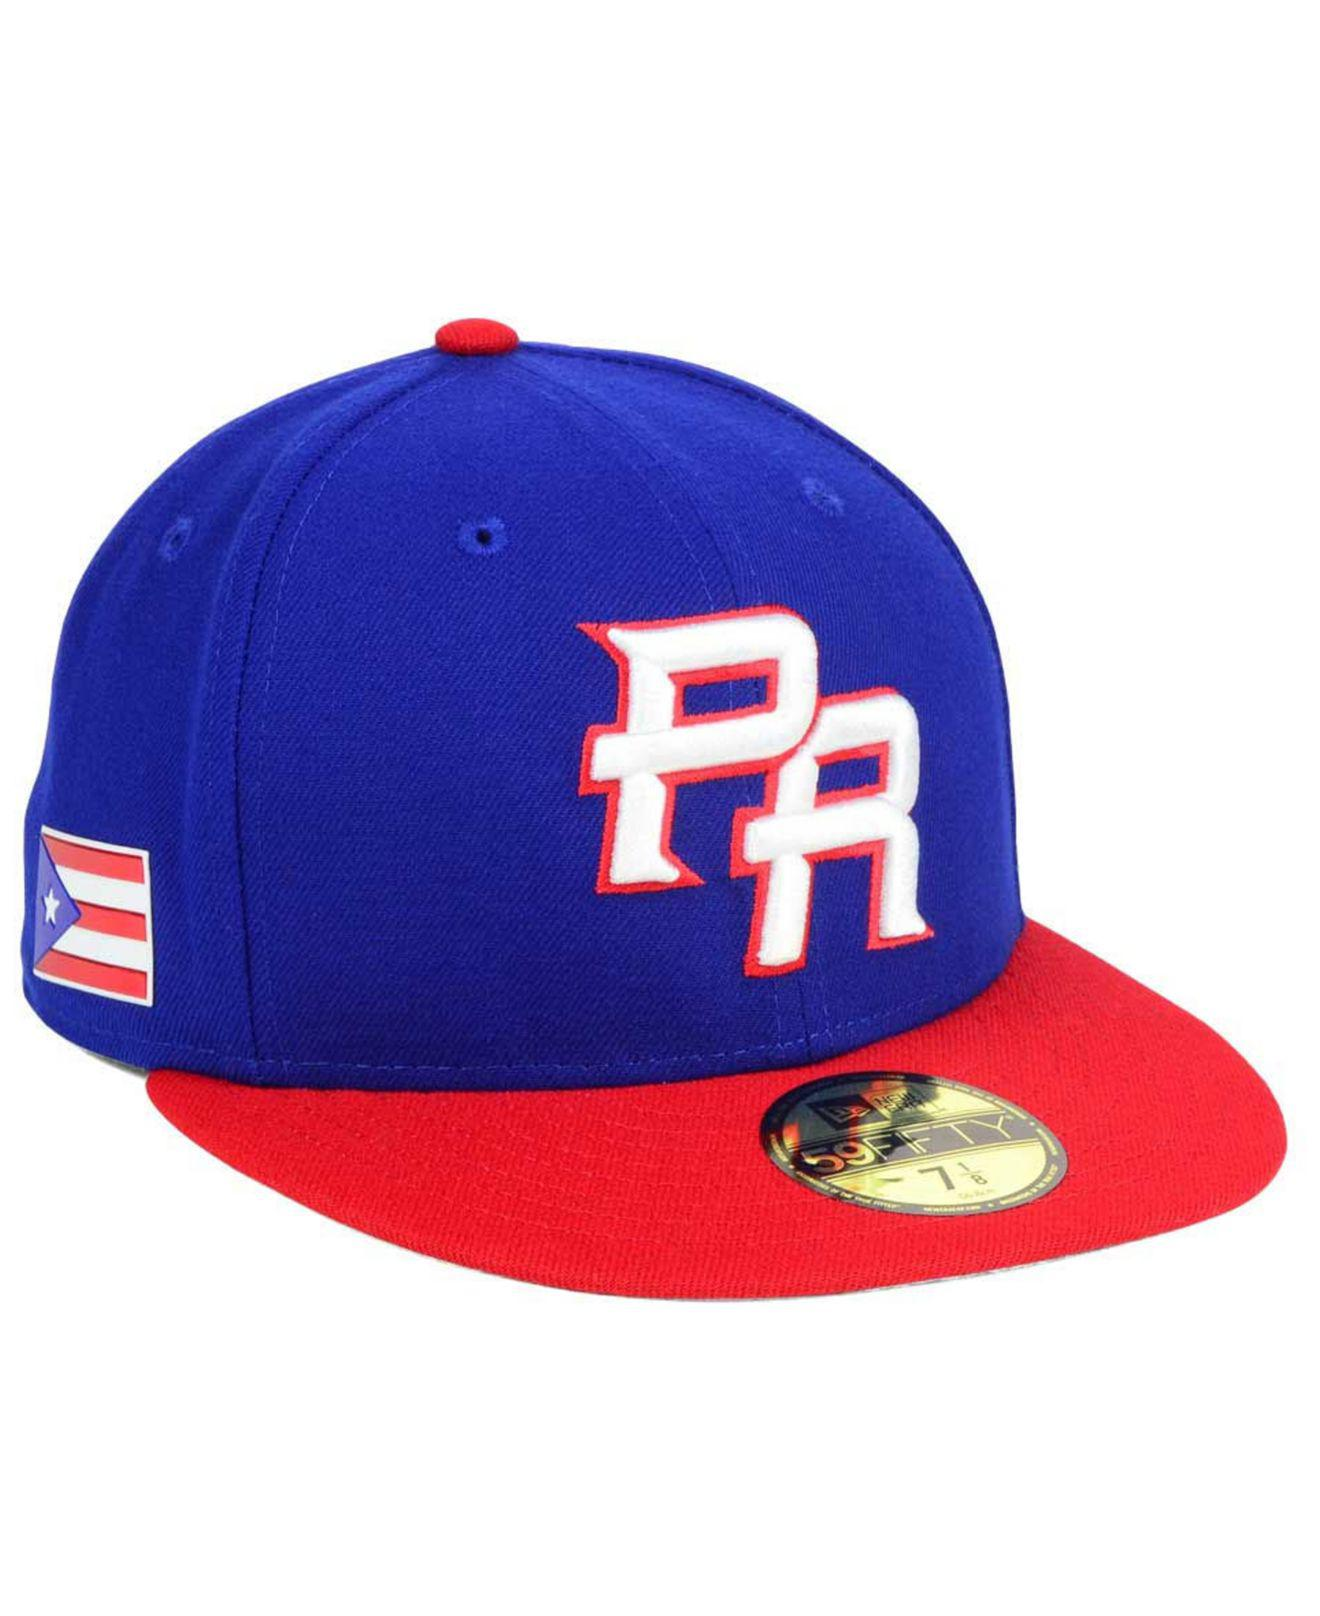 015d0331f9e Lyst - Ktz Puerto Rico World Baseball Classic 59fifty Fitted Cap in ...